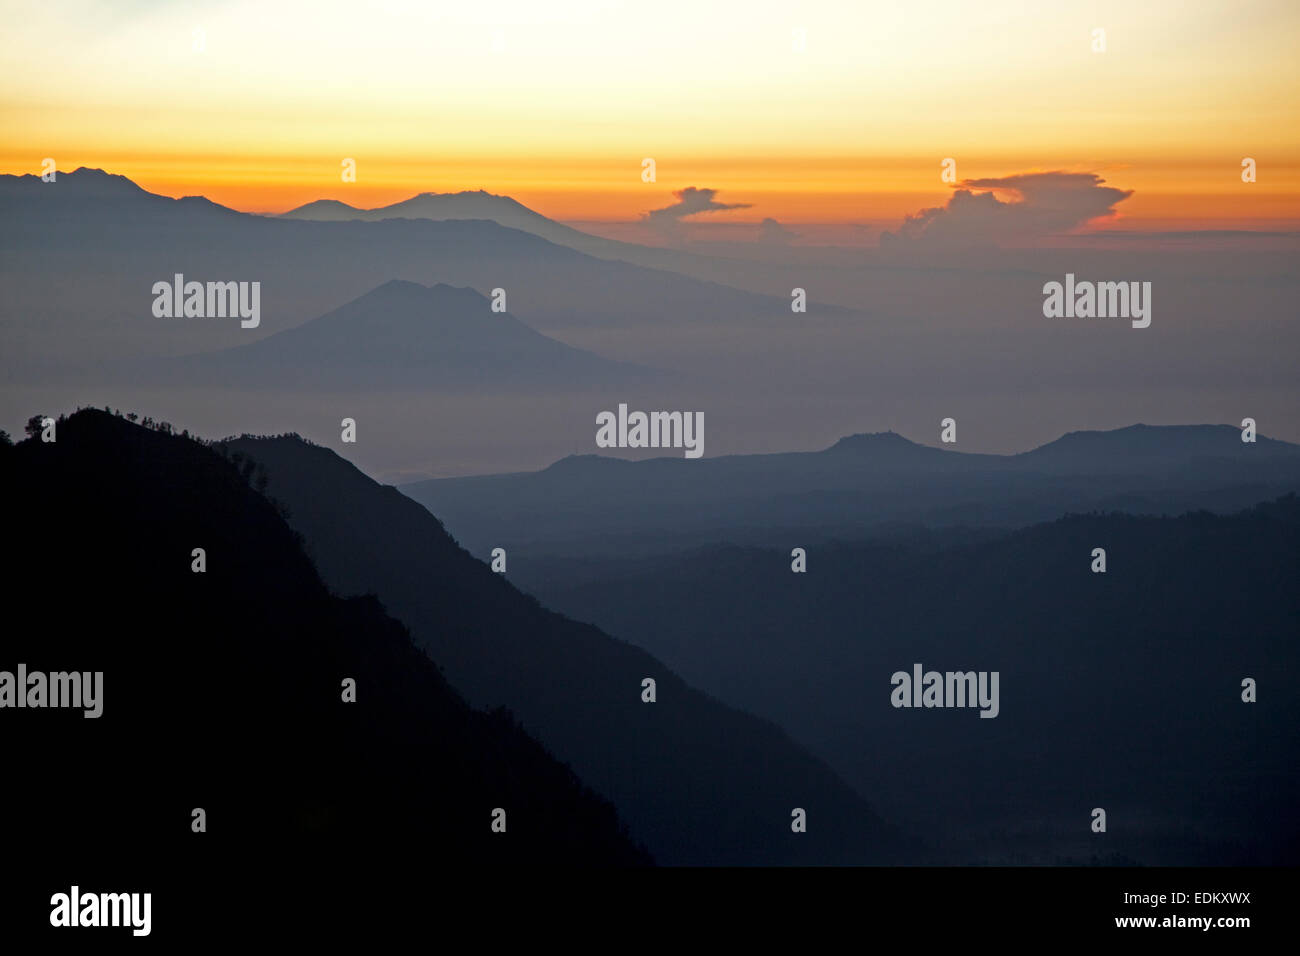 Sunrise seen from Mount Bromo / Gunung Bromo, active volcano and part of the Tengger massif, East Java, Indonesia - Stock Image